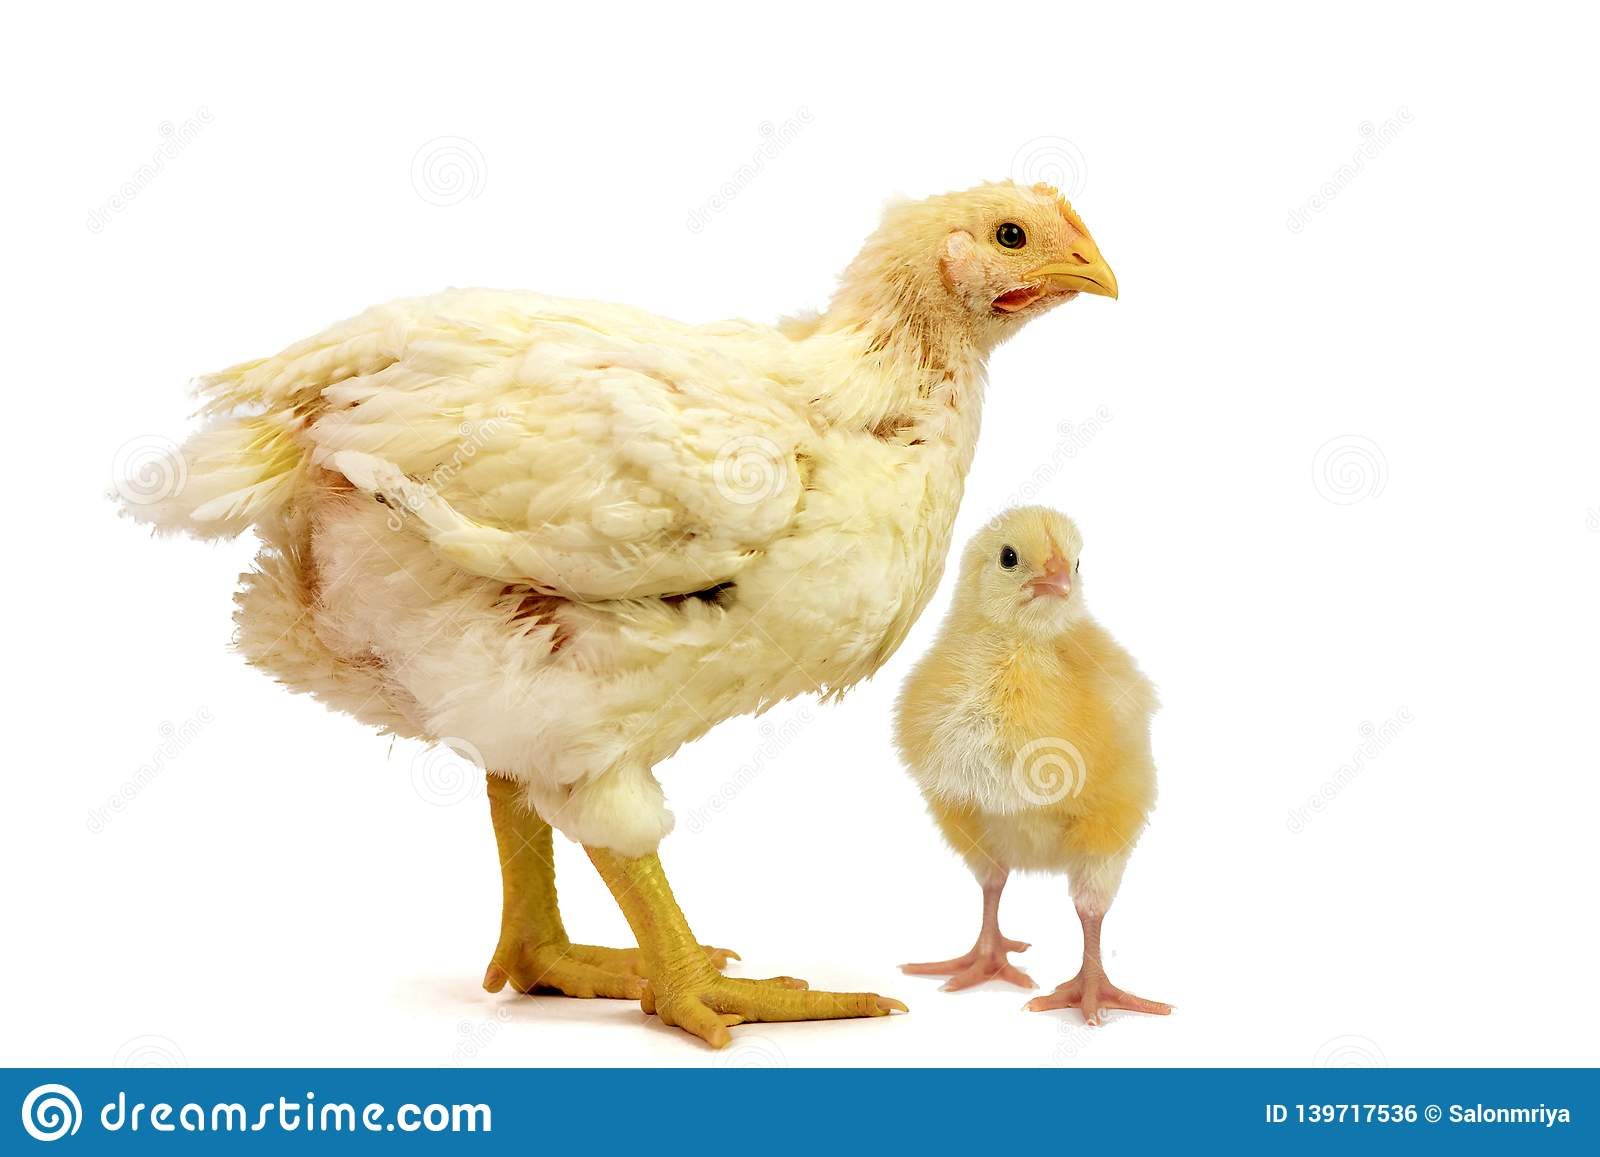 Two Broiler chicken 2 days and 21 days old isolated on white